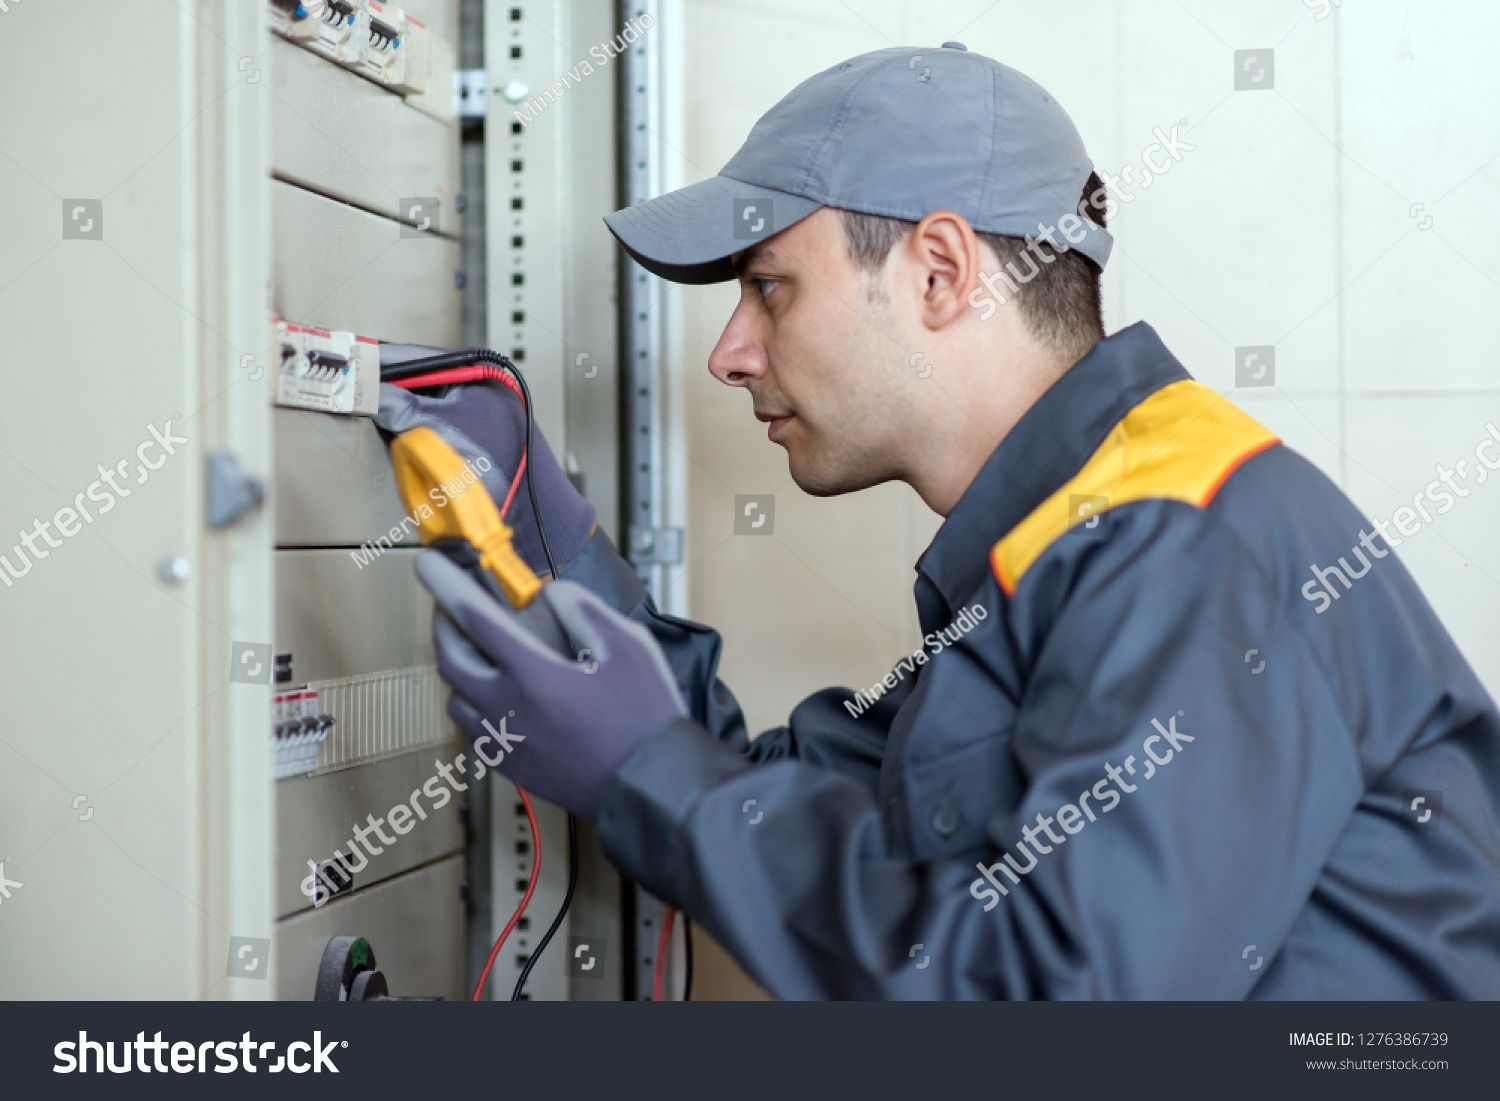 Electrician at work using a tester on an industrial panel